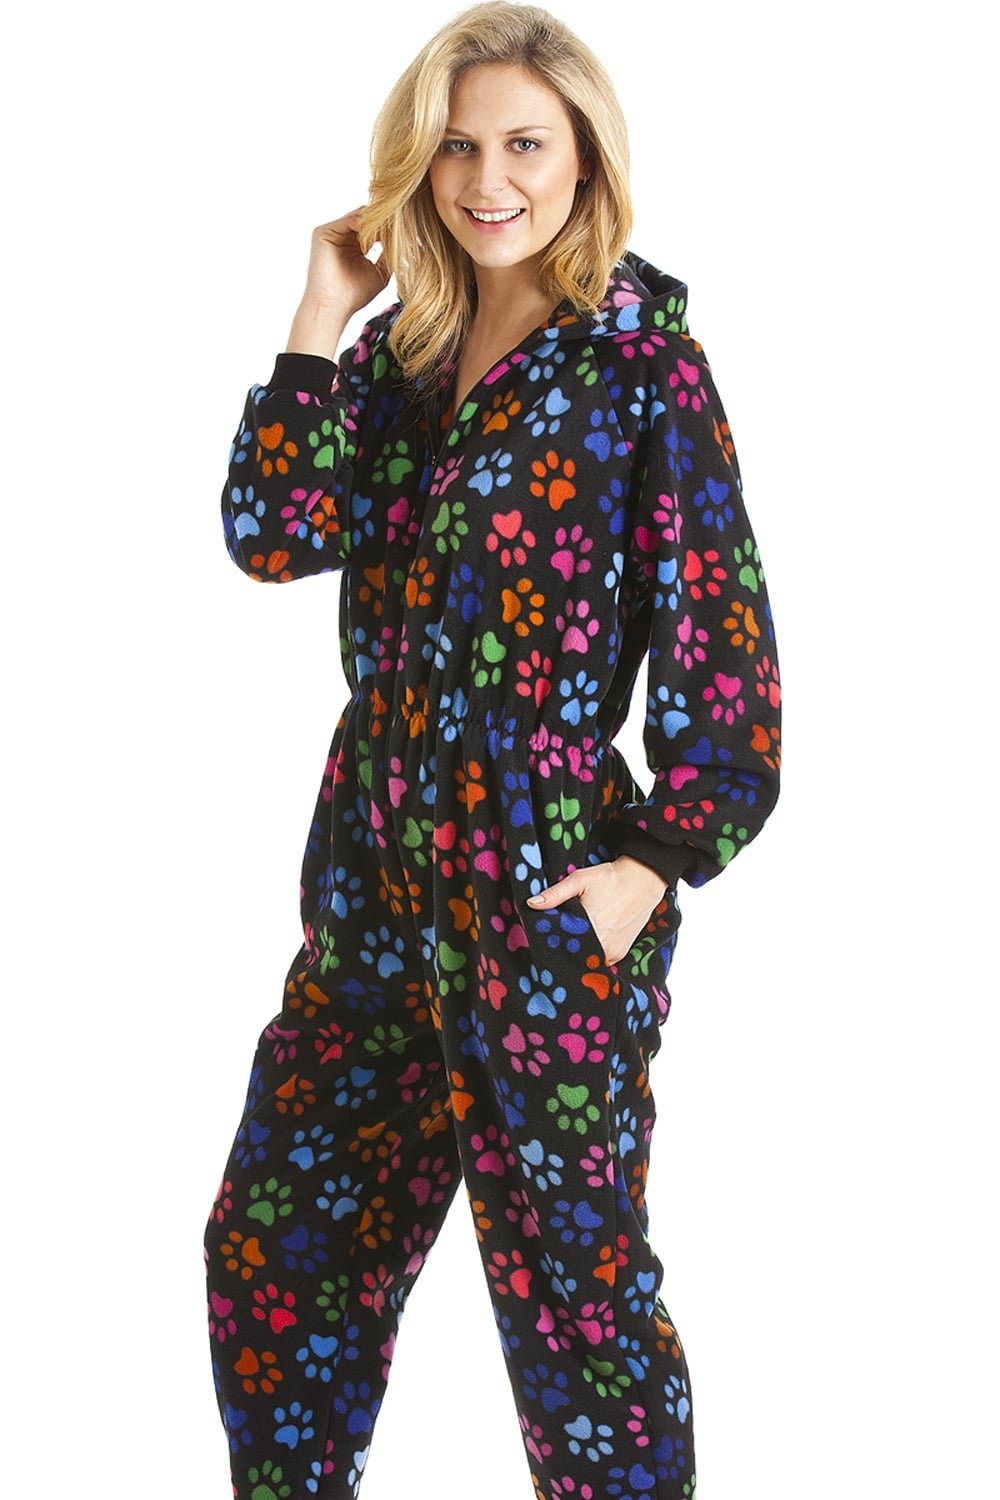 Camille Womens Various Multi-Coloured Paw Print Onesie